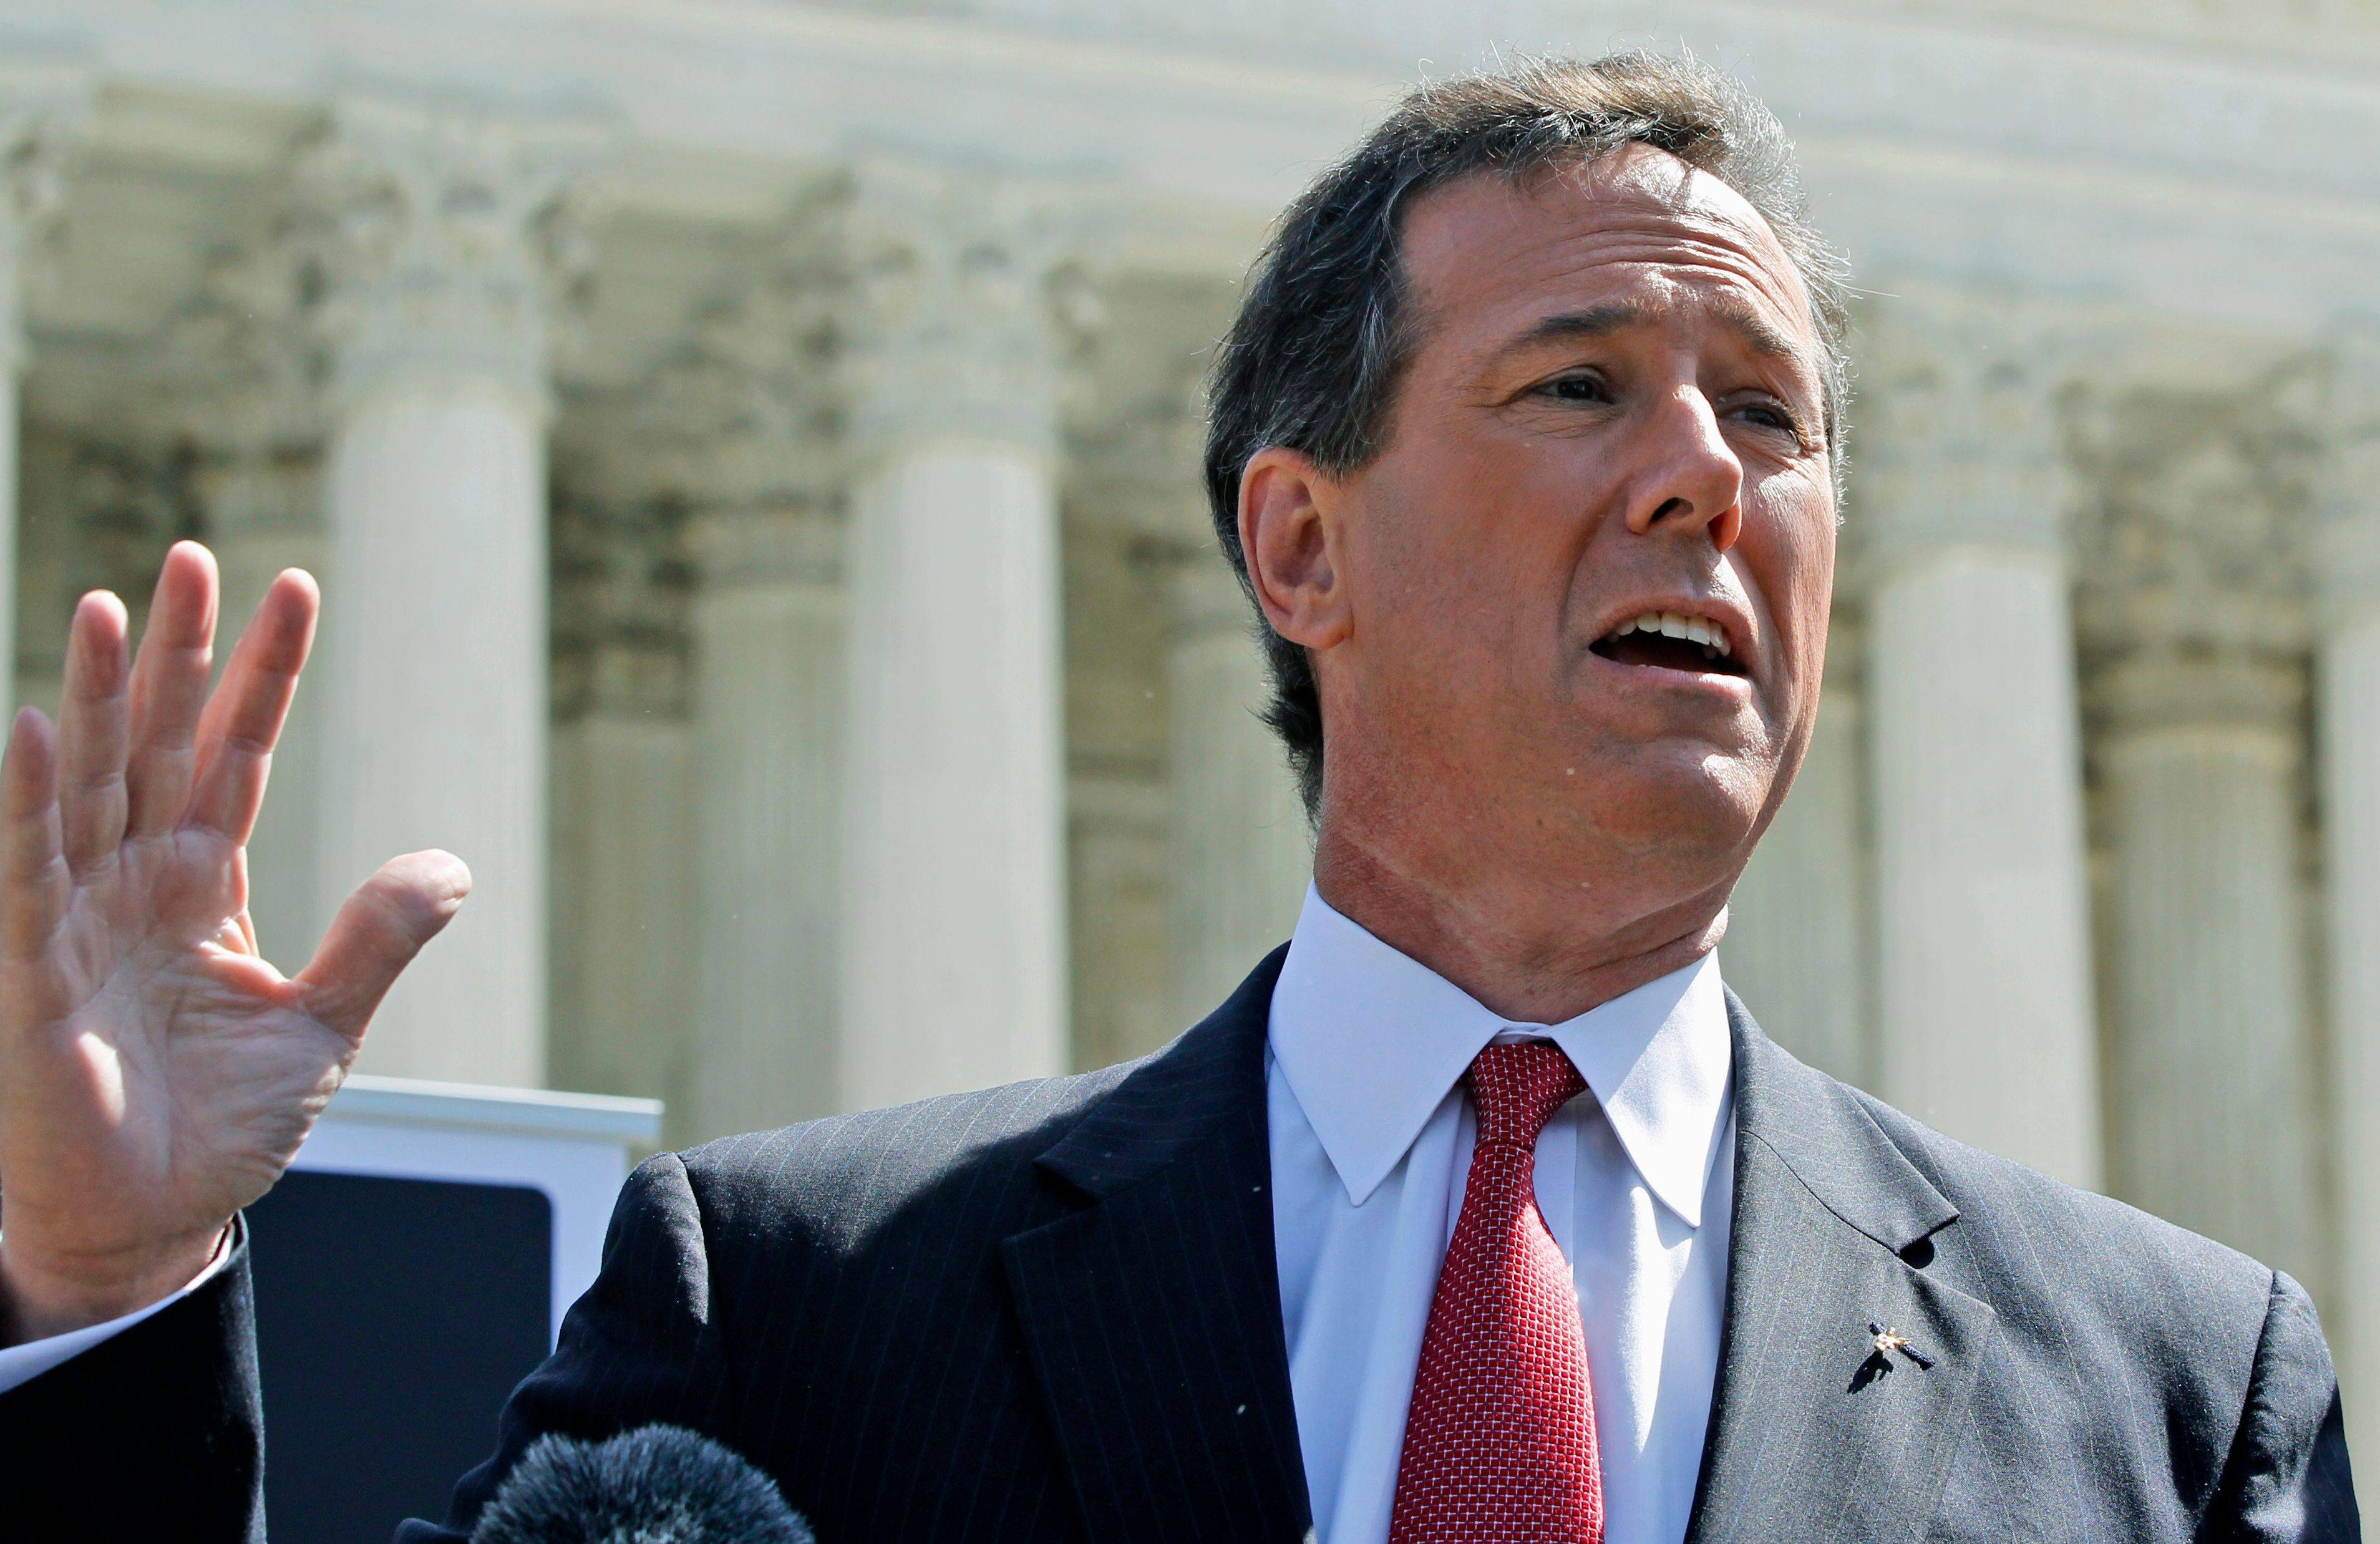 Republican presidential candidate, former Pennsylvania Sen. Rick Santorum speaks in front of the Supreme Court in Washington Monday, as the court began three days of arguments on the health care law signed by President Barack Obama.